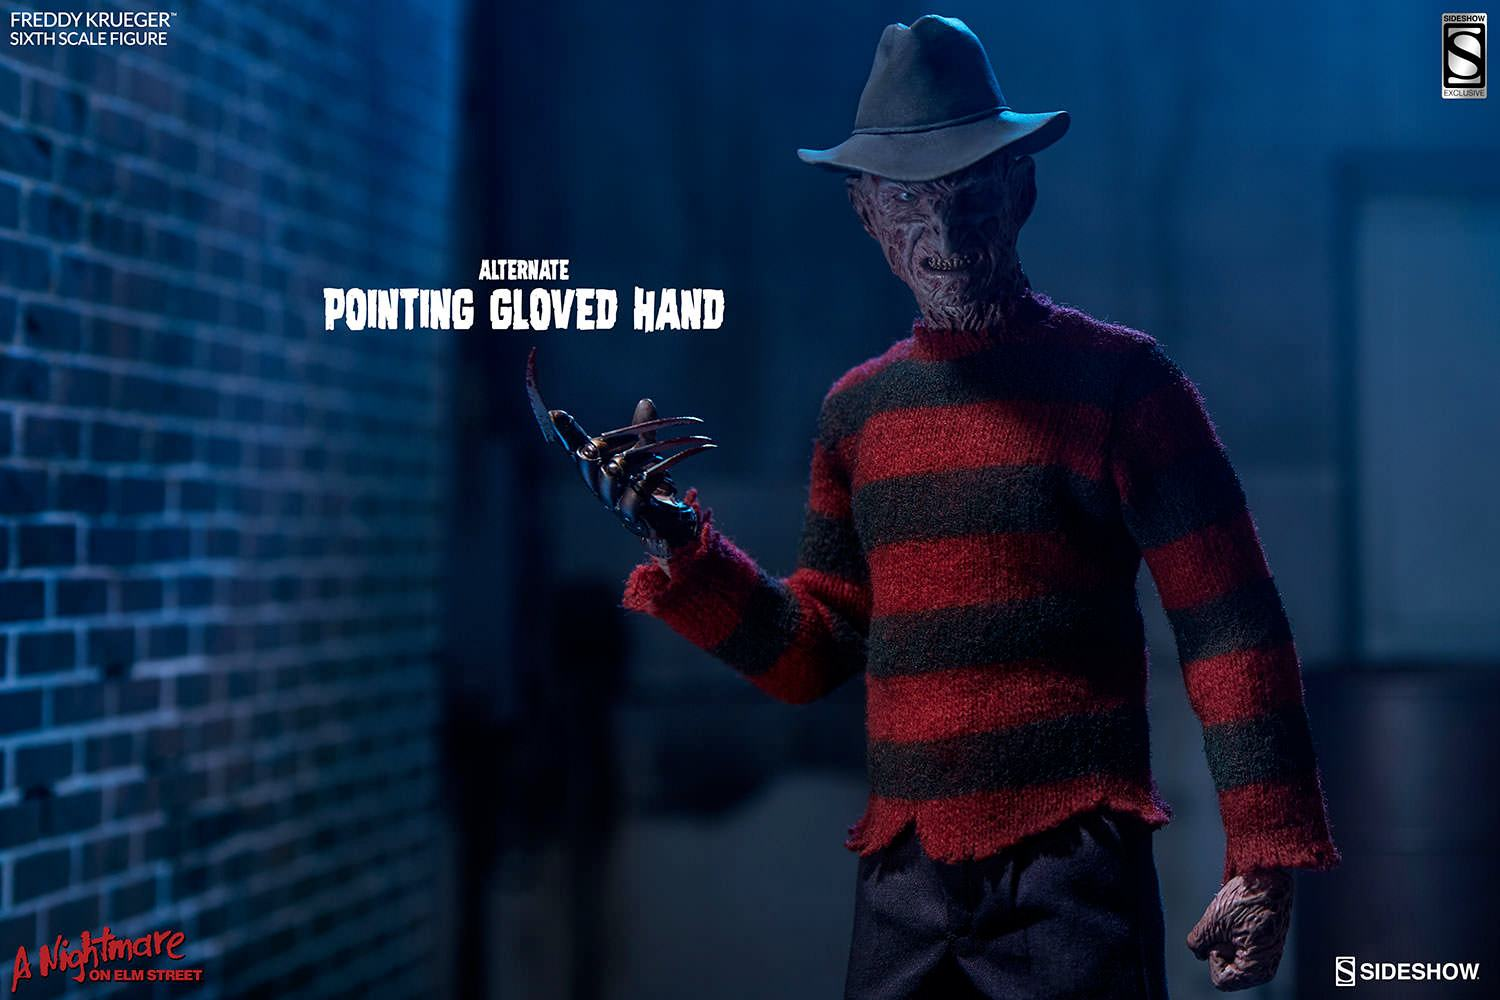 freddy-krueger-sixth-scale-figure-sideshow-09